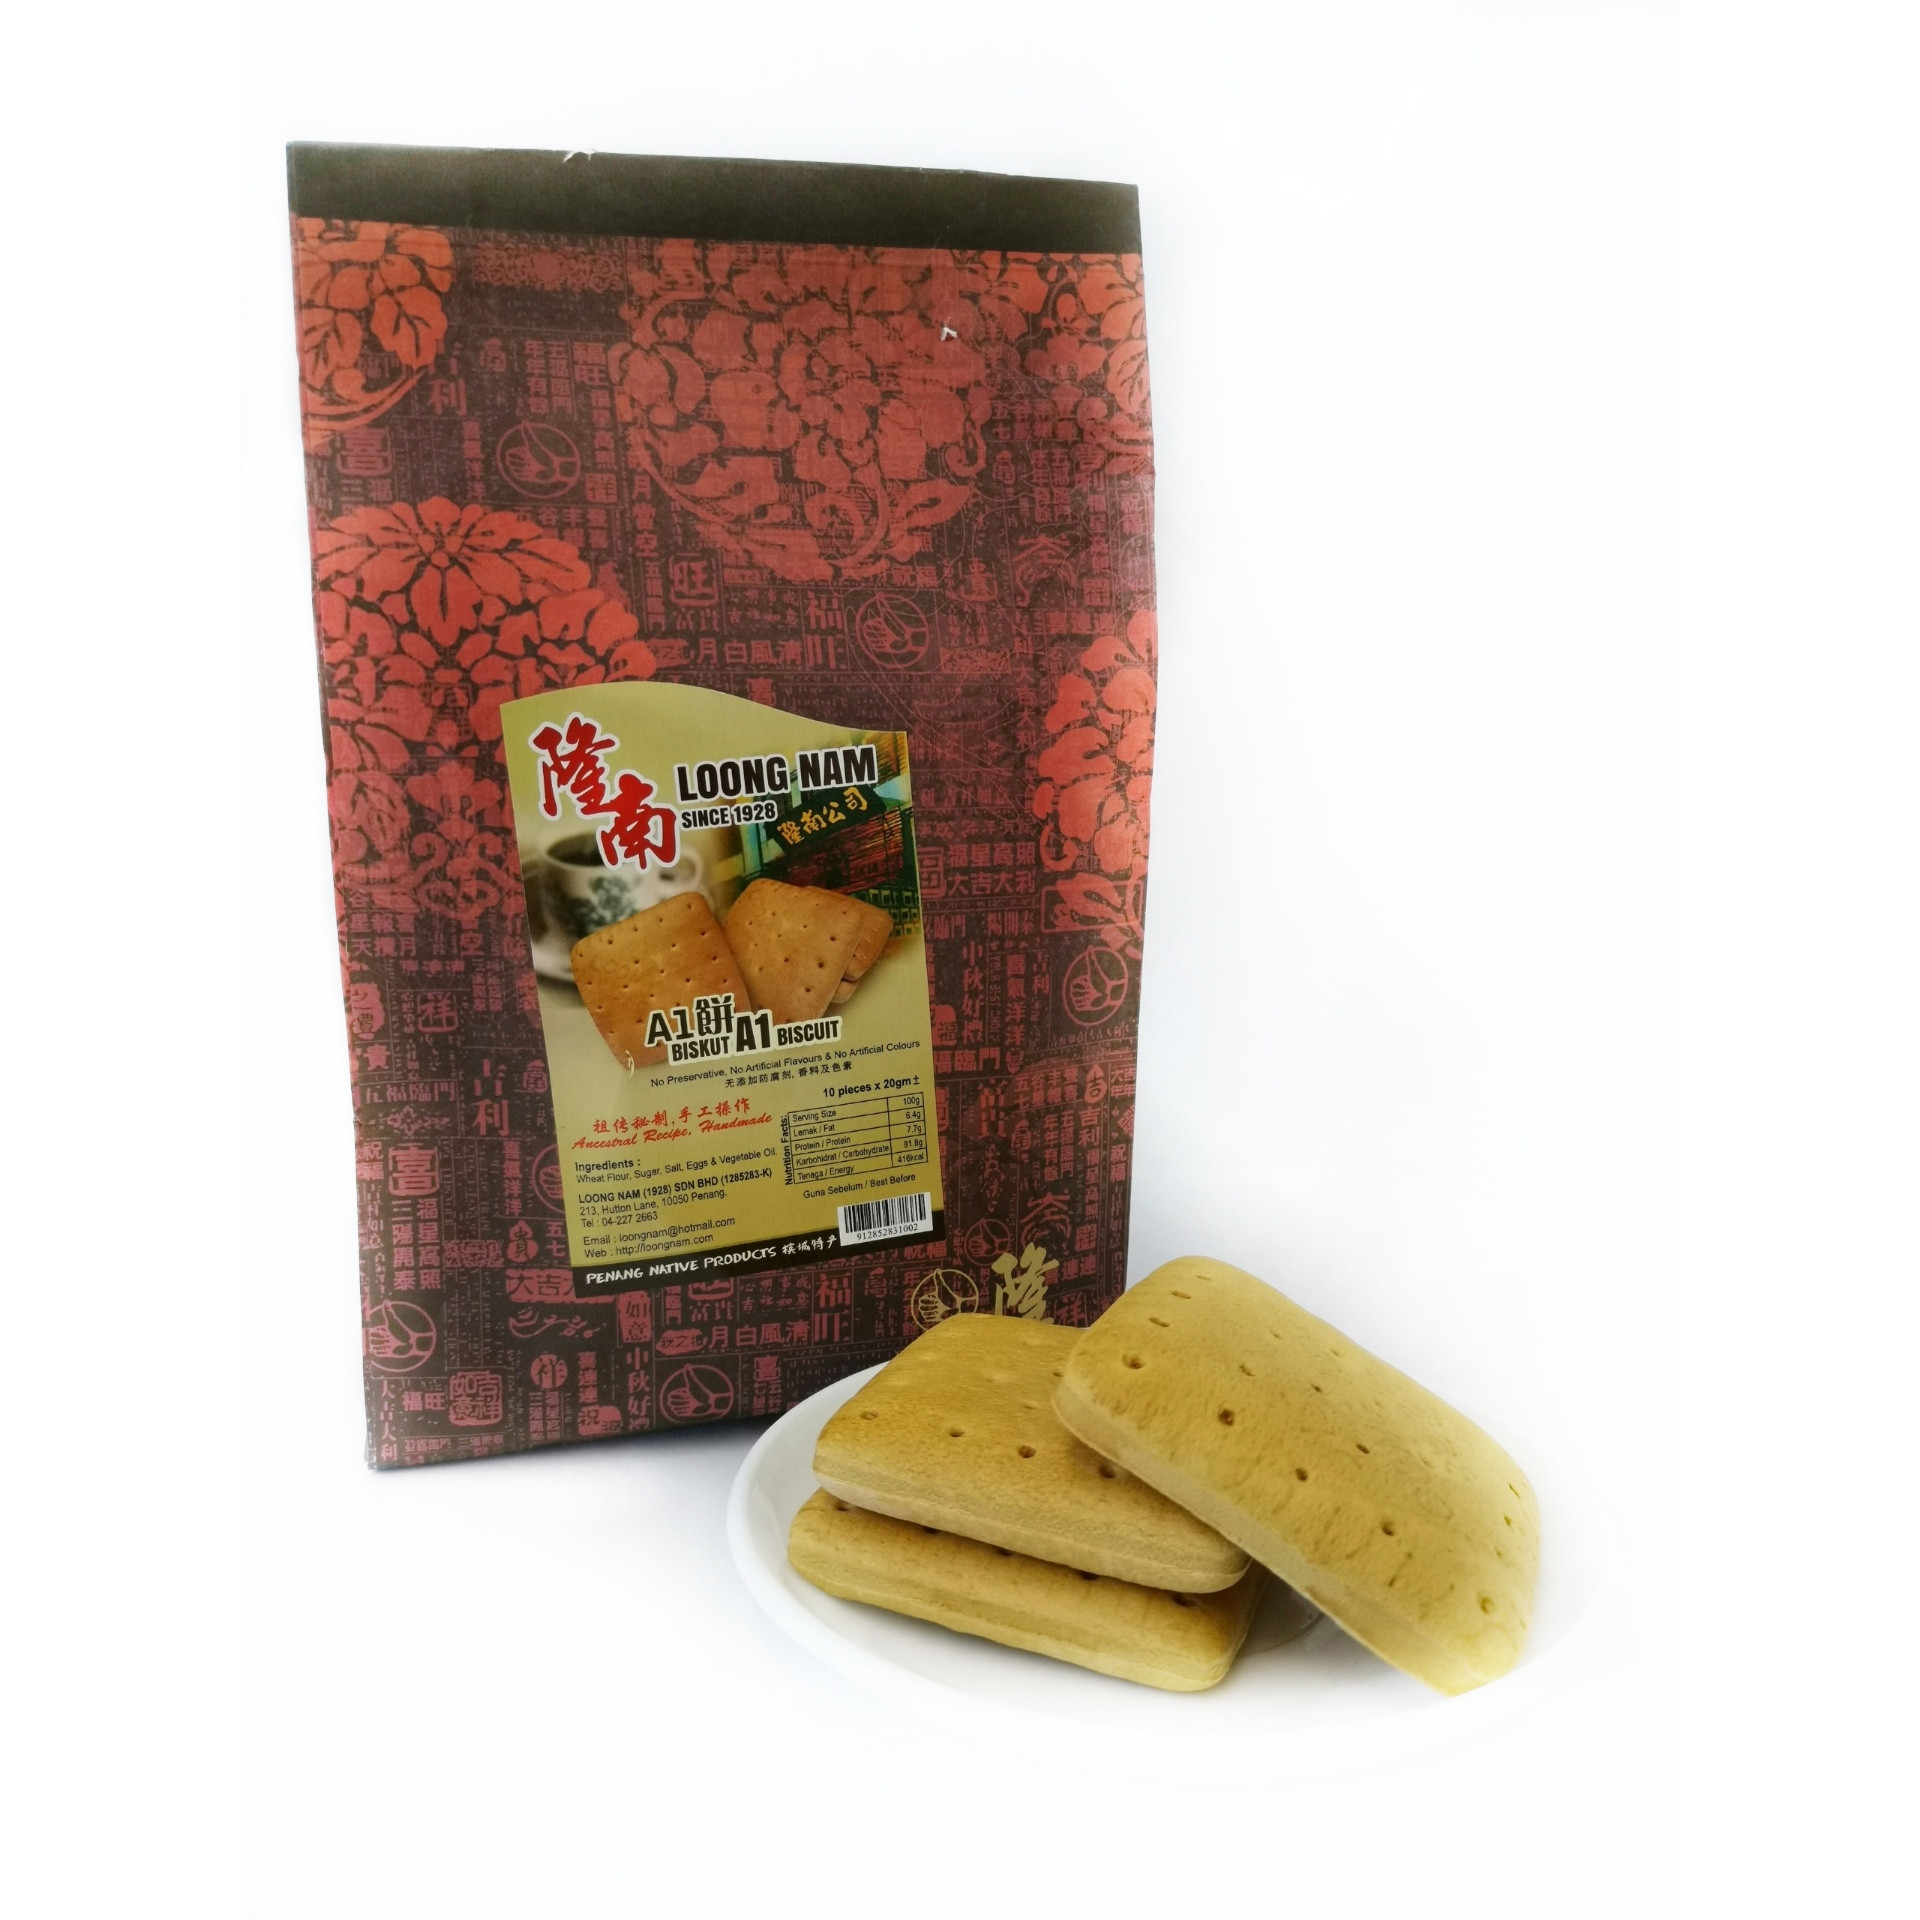 image of Biskut A1 A1 饼干